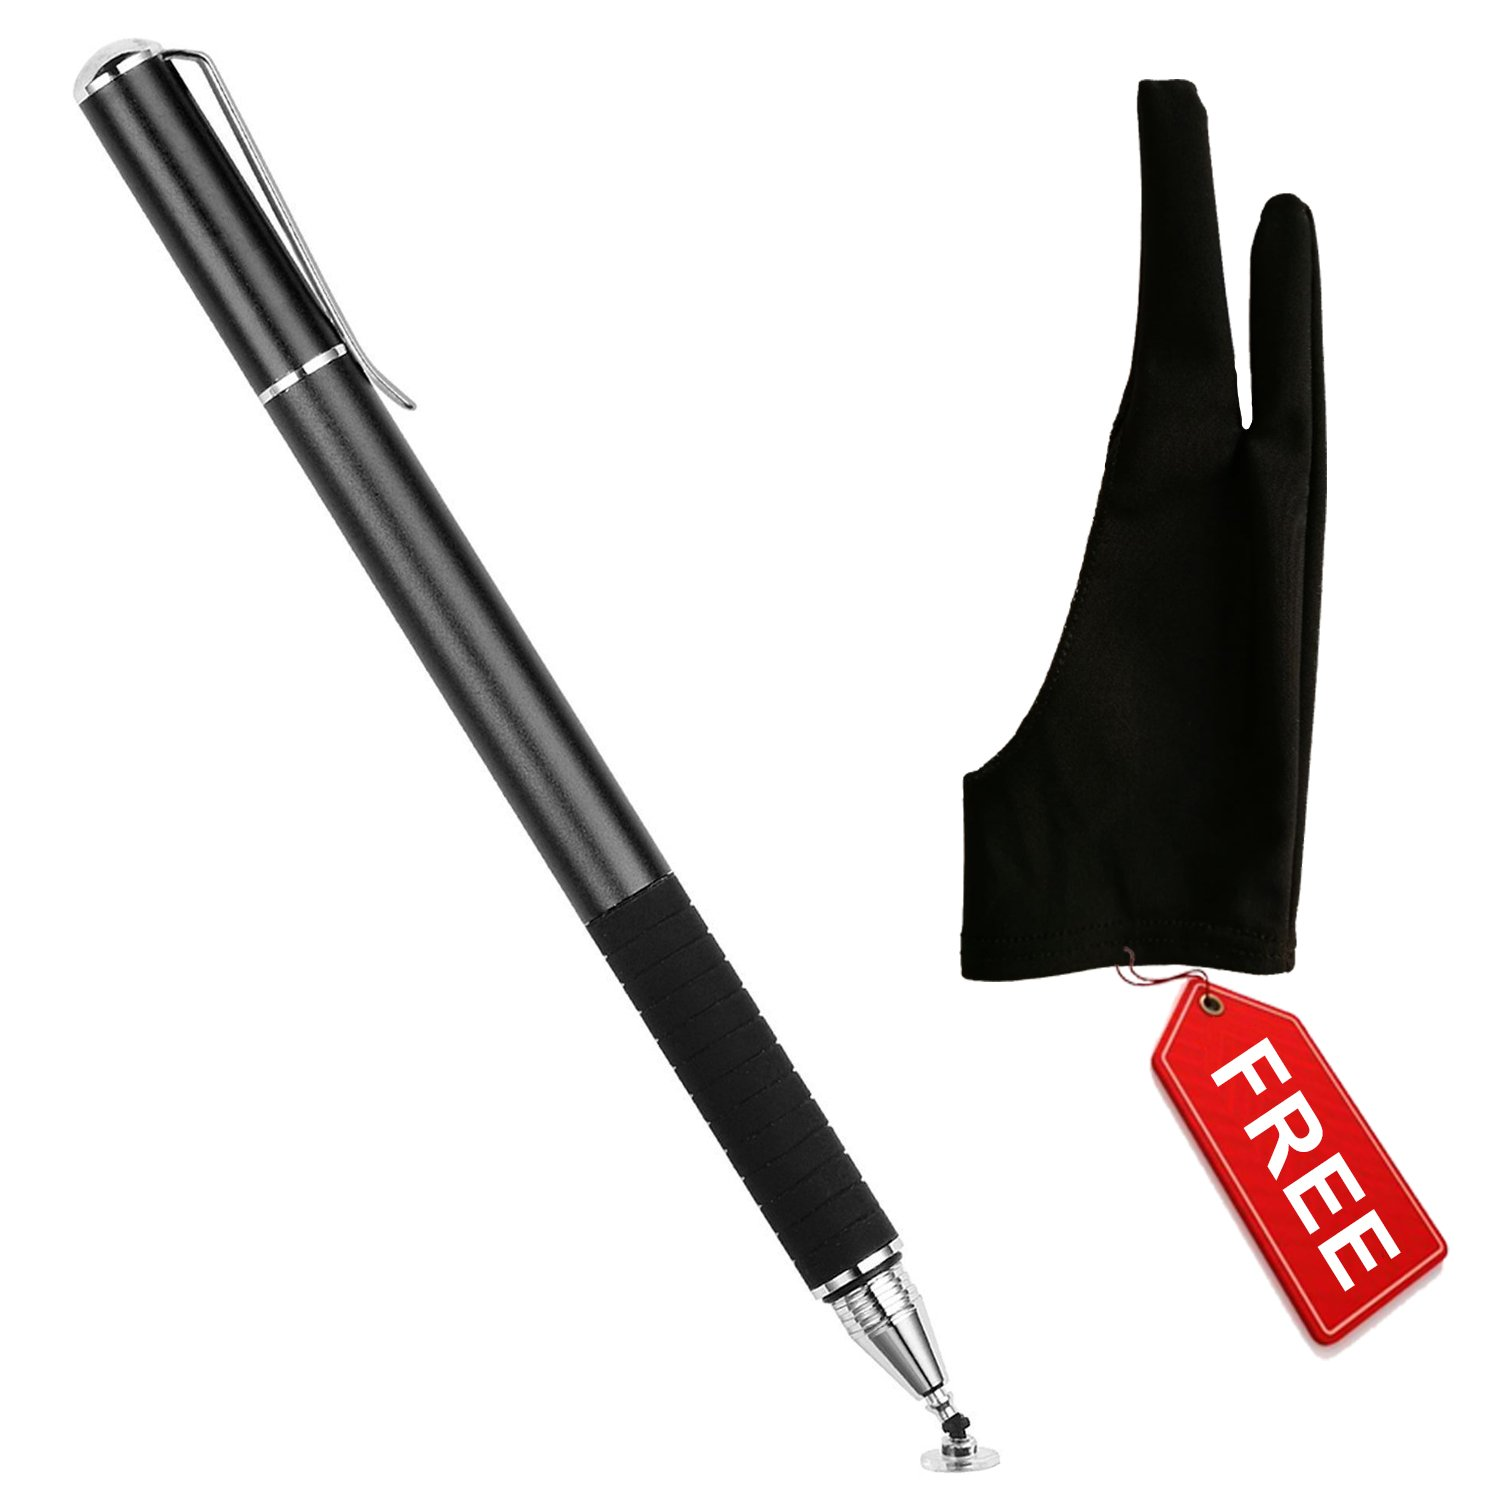 Stylus Pen for ipad with Artist Drawing Glove | Compatible with Wacom Graphic Tablets | Left Or Right Hand Glove for Light Box, Sketching and Painting